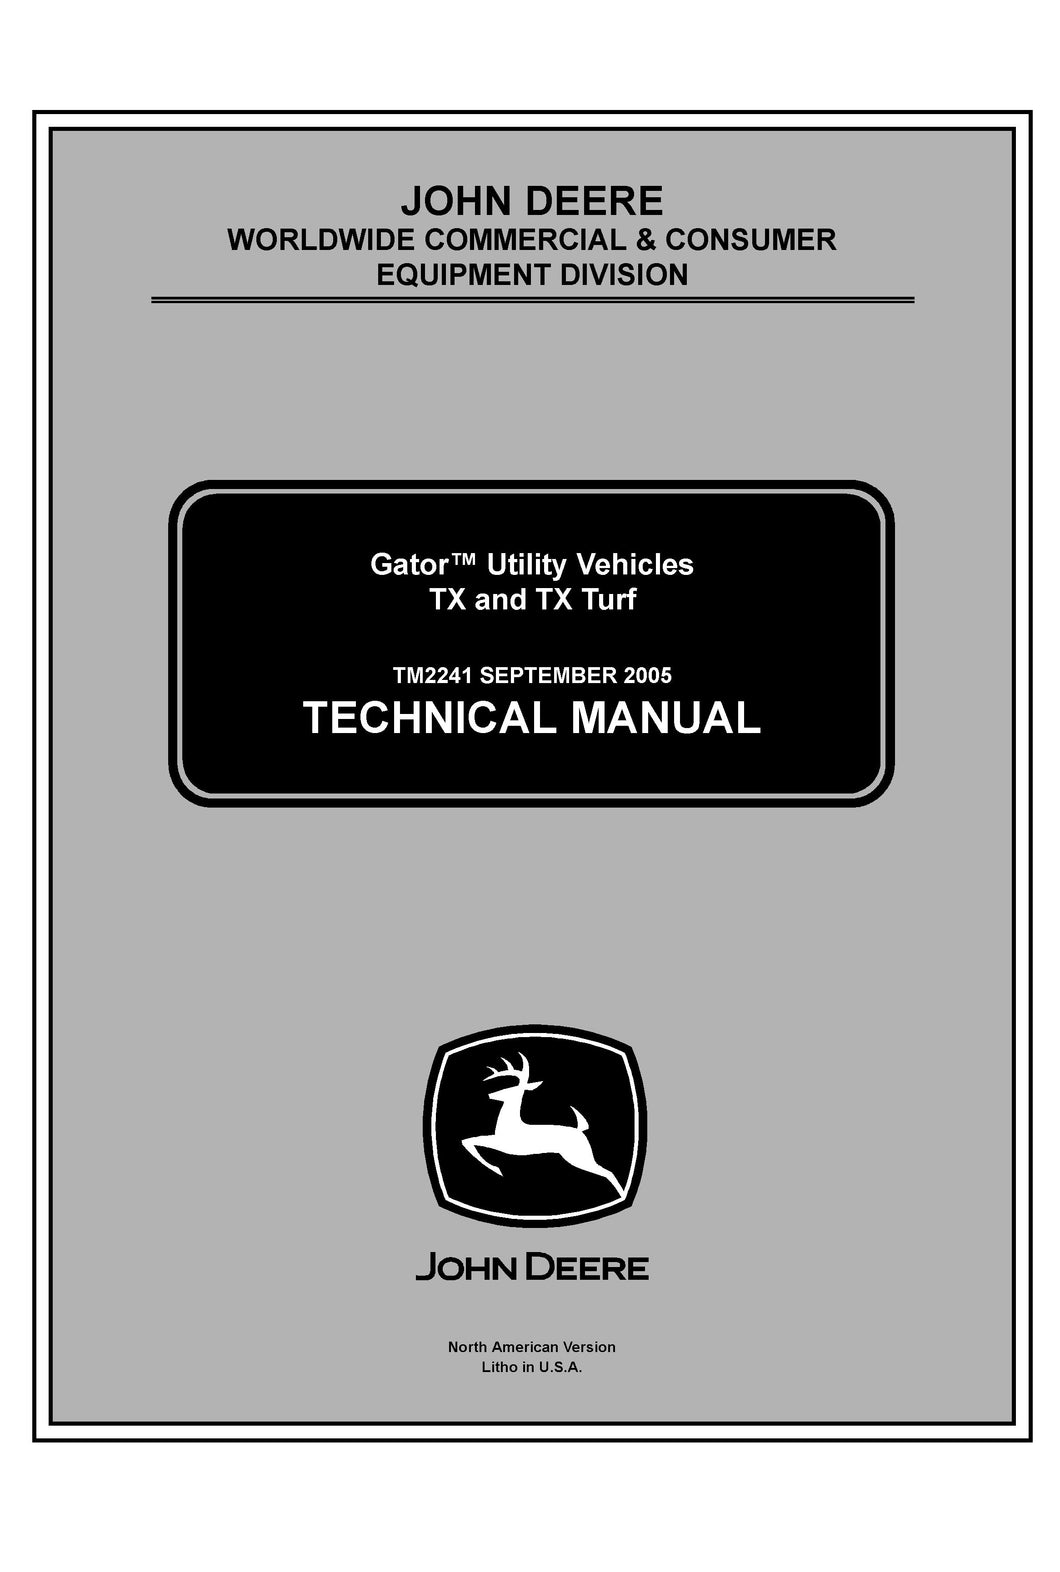 John Deere TX and TX Turf Gator Utility Vehicles Service Manual TM 2241